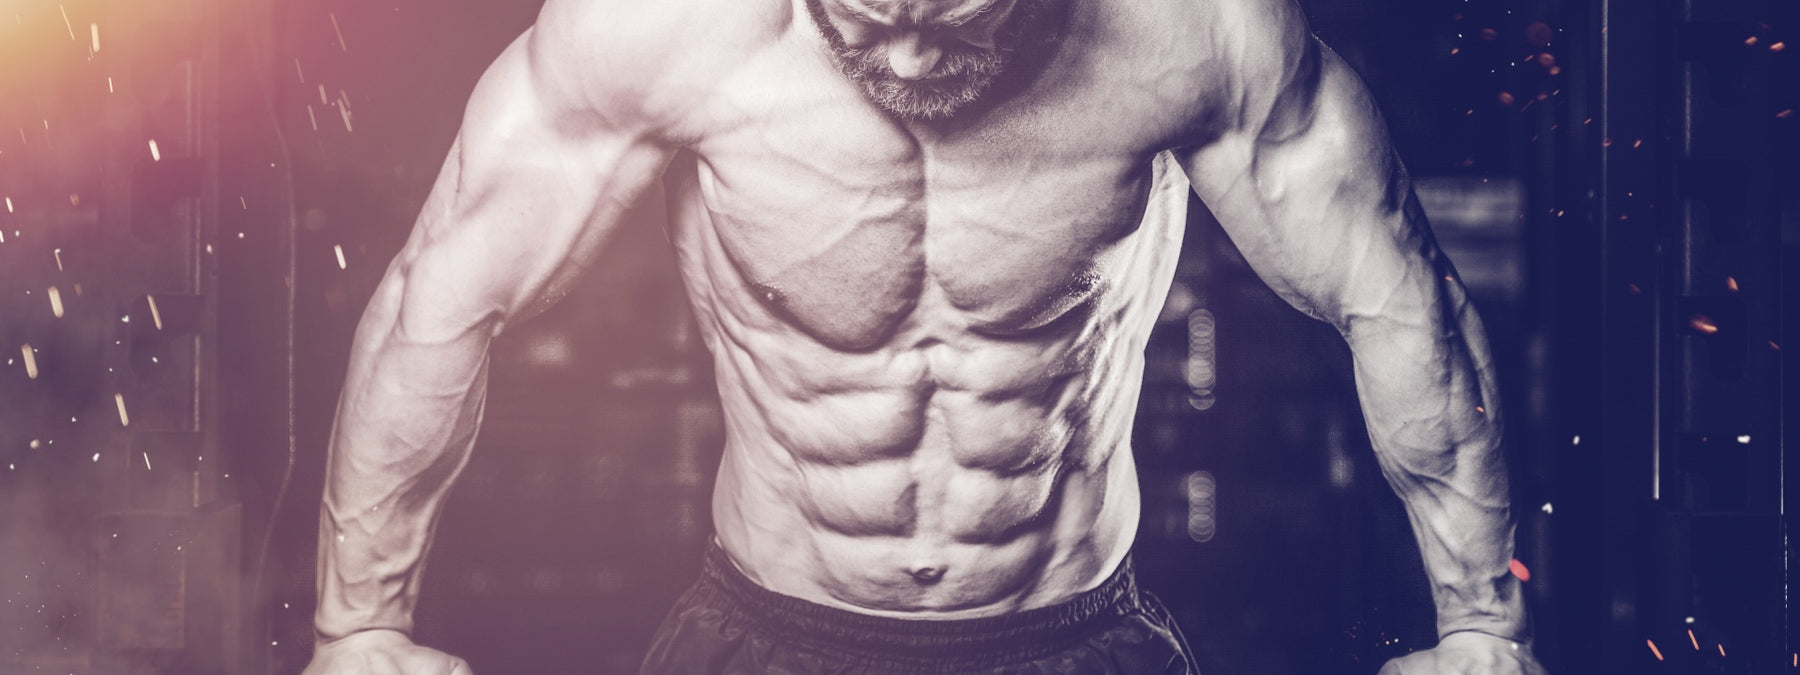 Improve Your Workouts for Abs: 8 Exercises for a Shredded Midsection